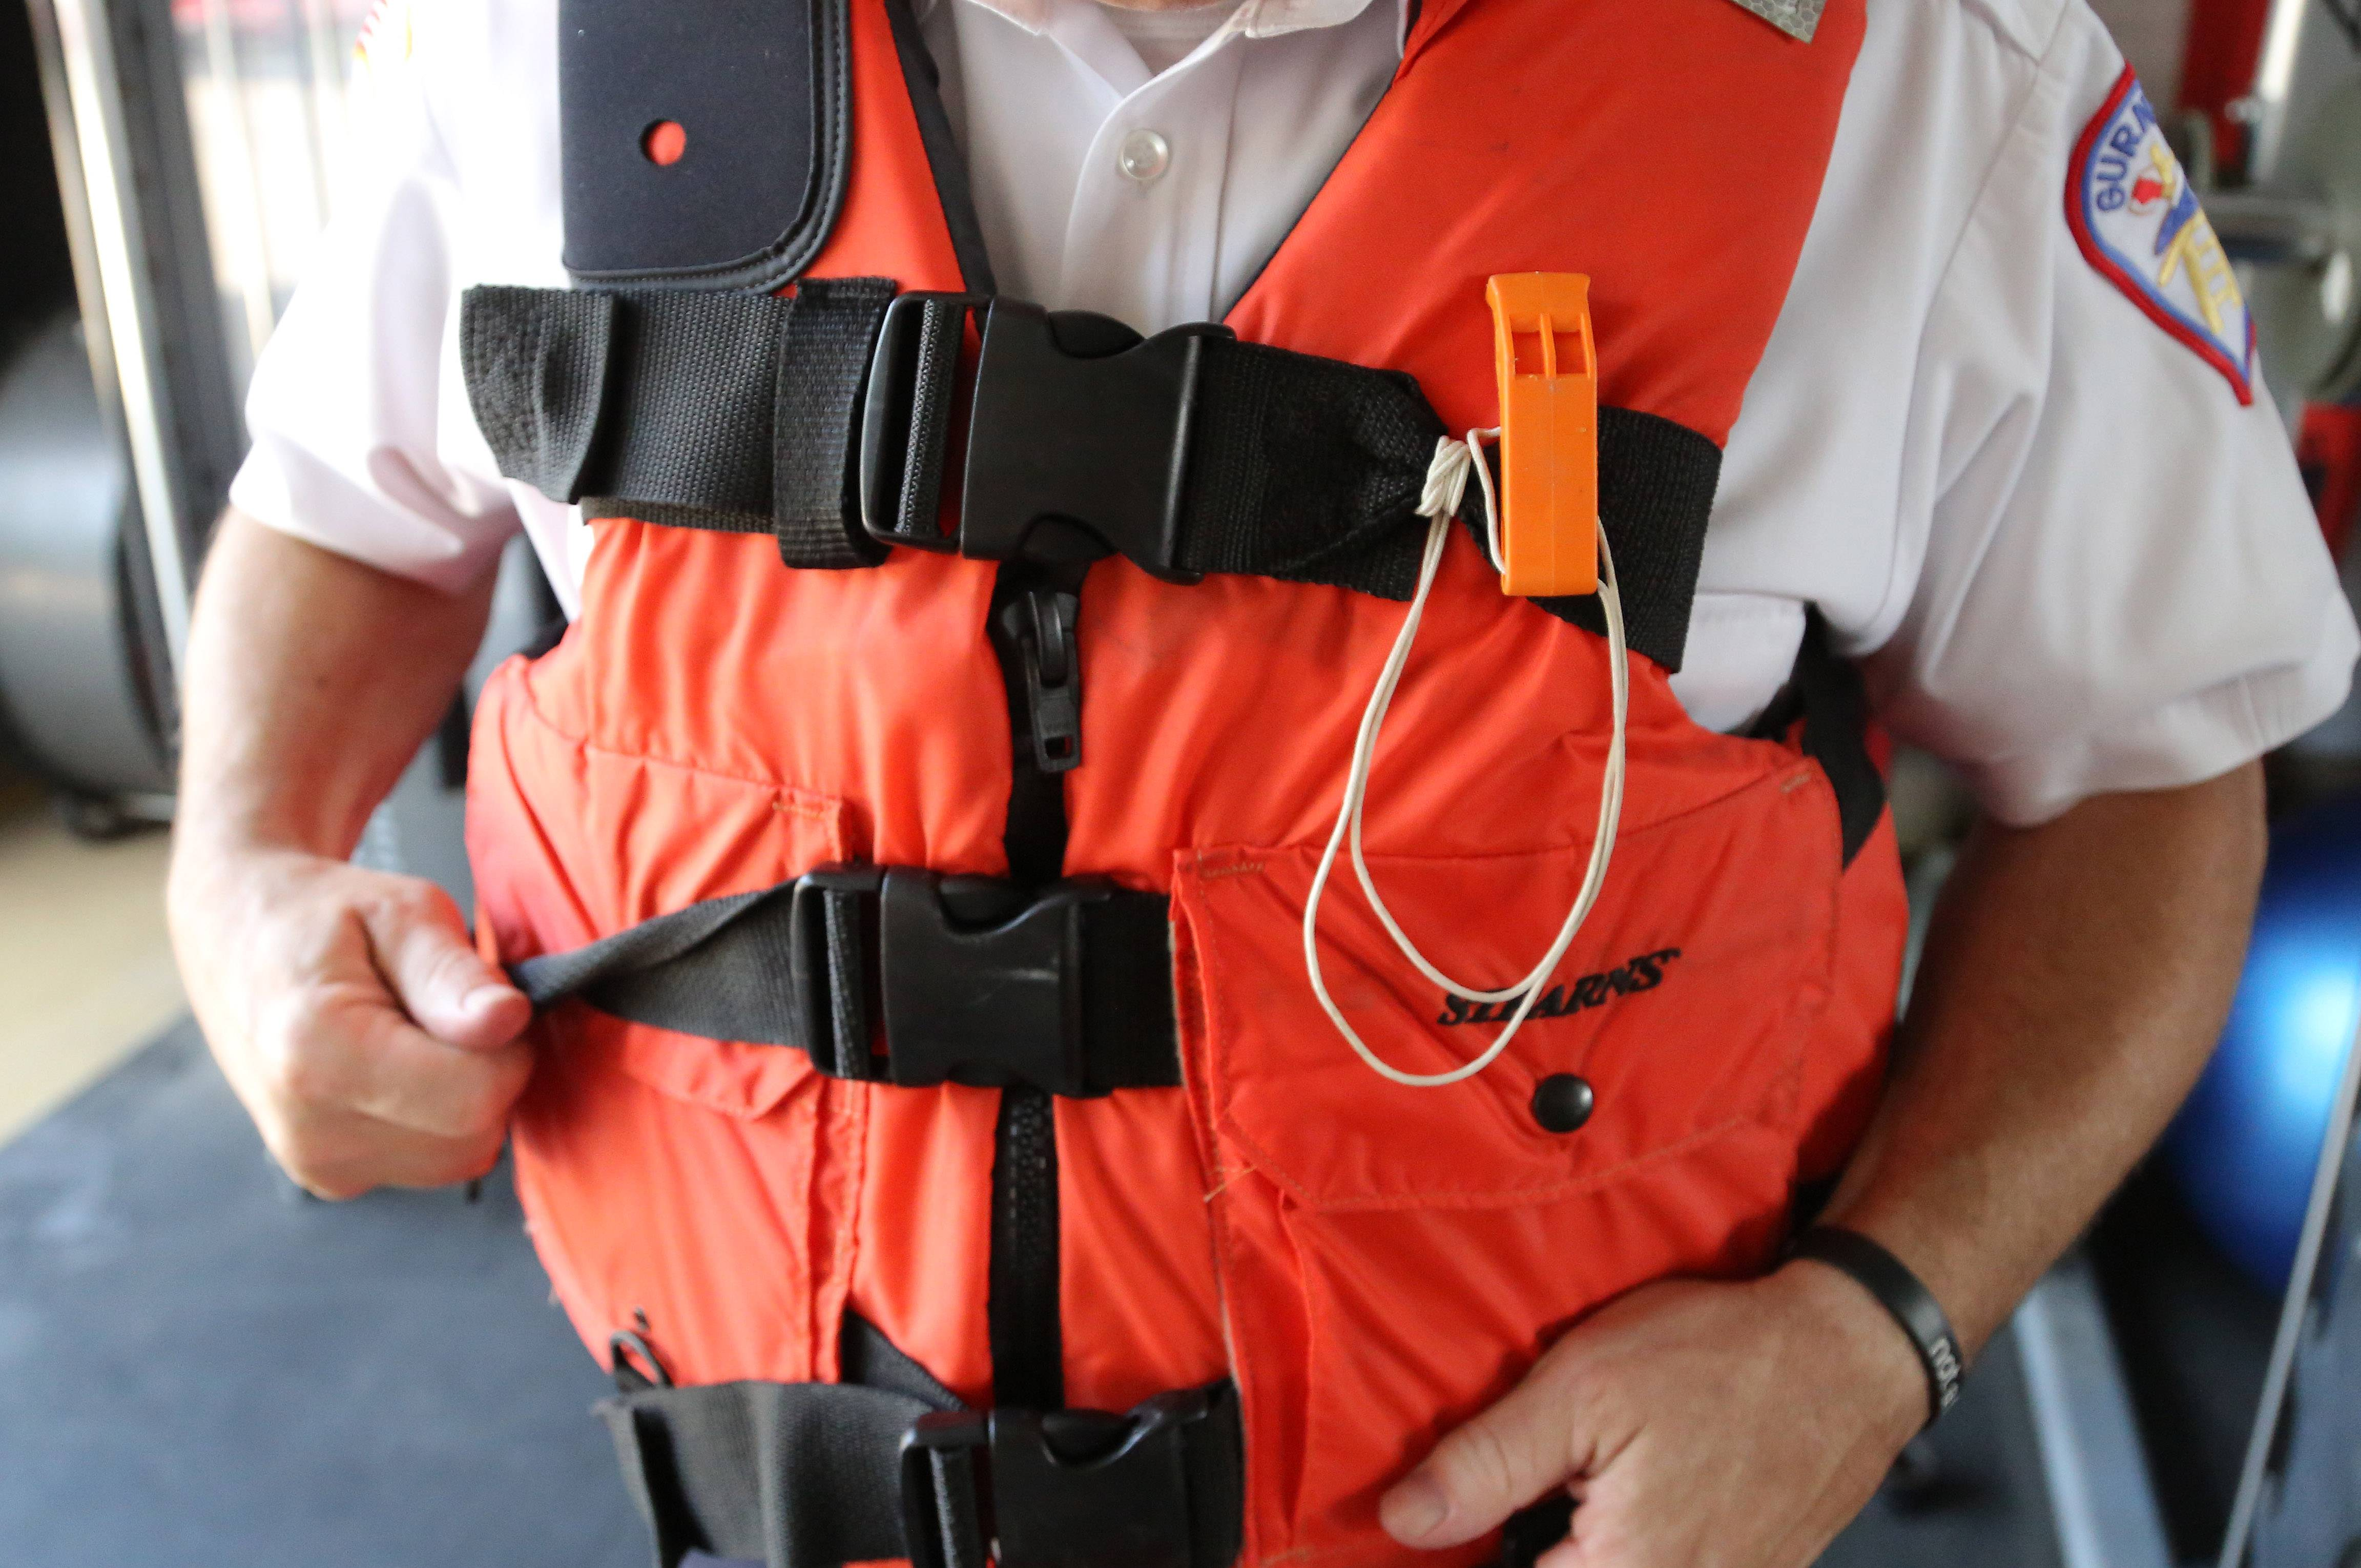 Experts: Wear flotation devices away from shore